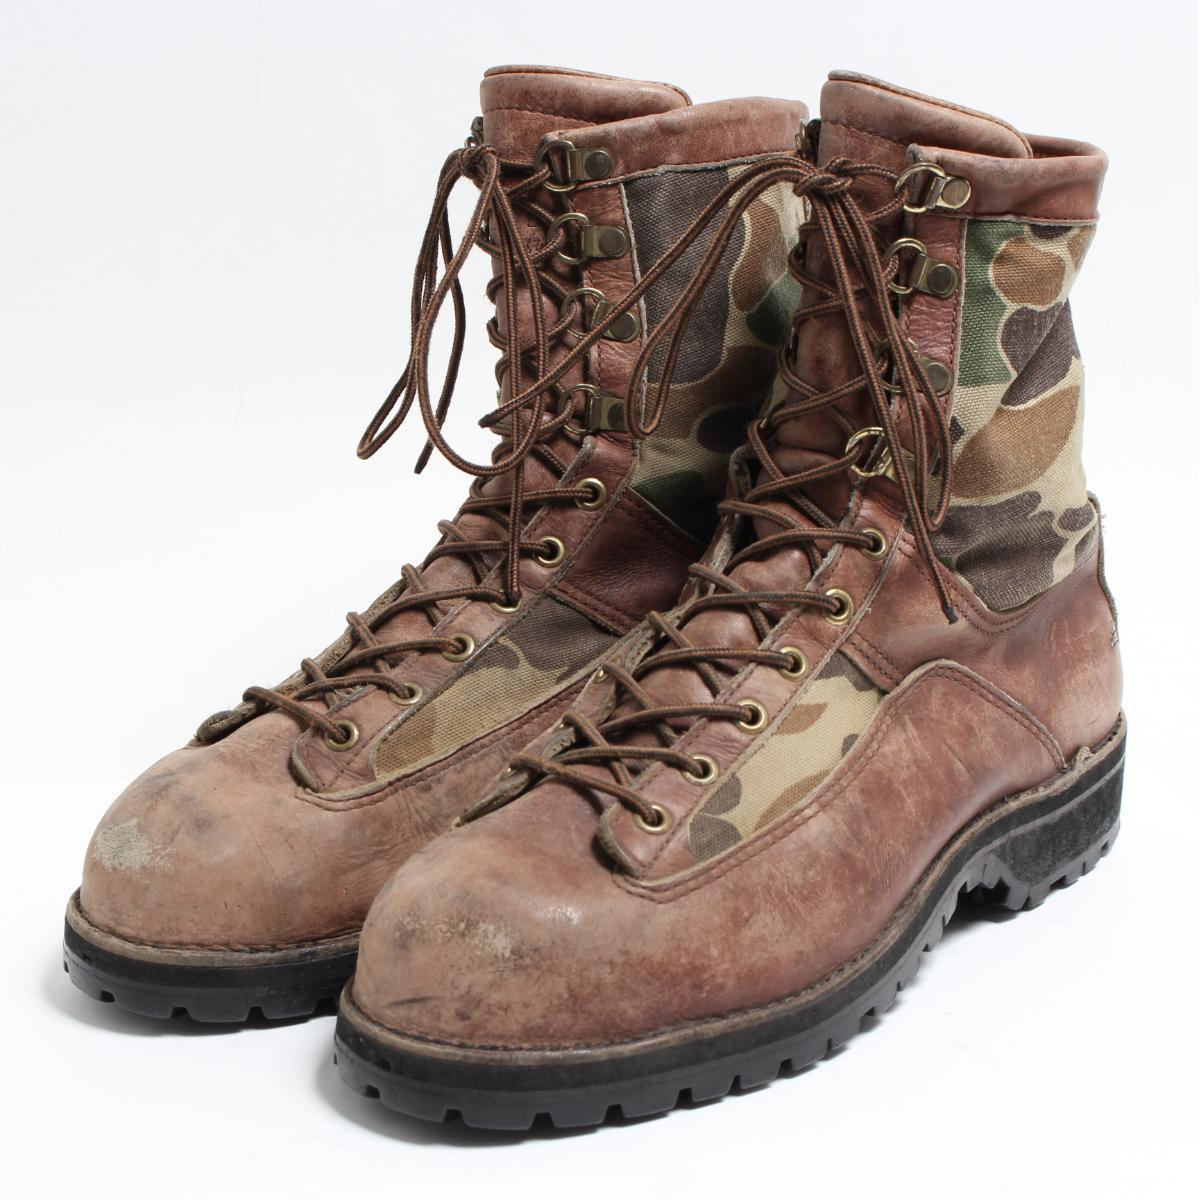 54f81e6f16c 10EE men 28.0cm vintage /bon6650 in the 80s made in Danner DANNER CABELA'S  work boots USA